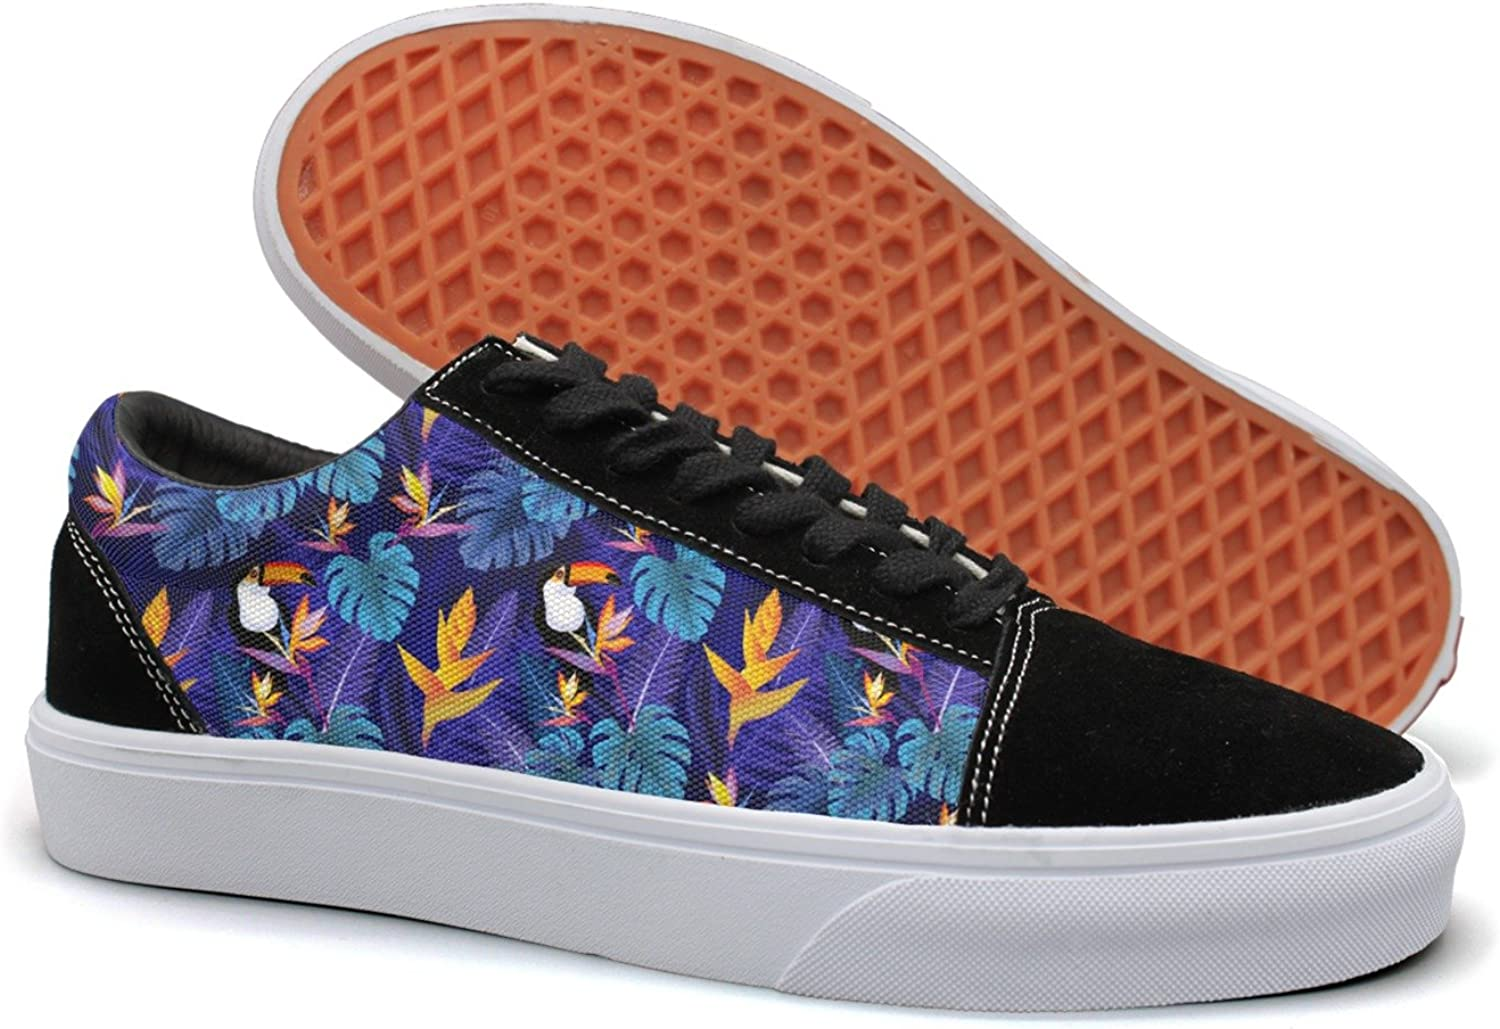 Hjkggd fgfds Casual Flowers and Toucan Bird Beautiful Women Canvas Sneakers shoes